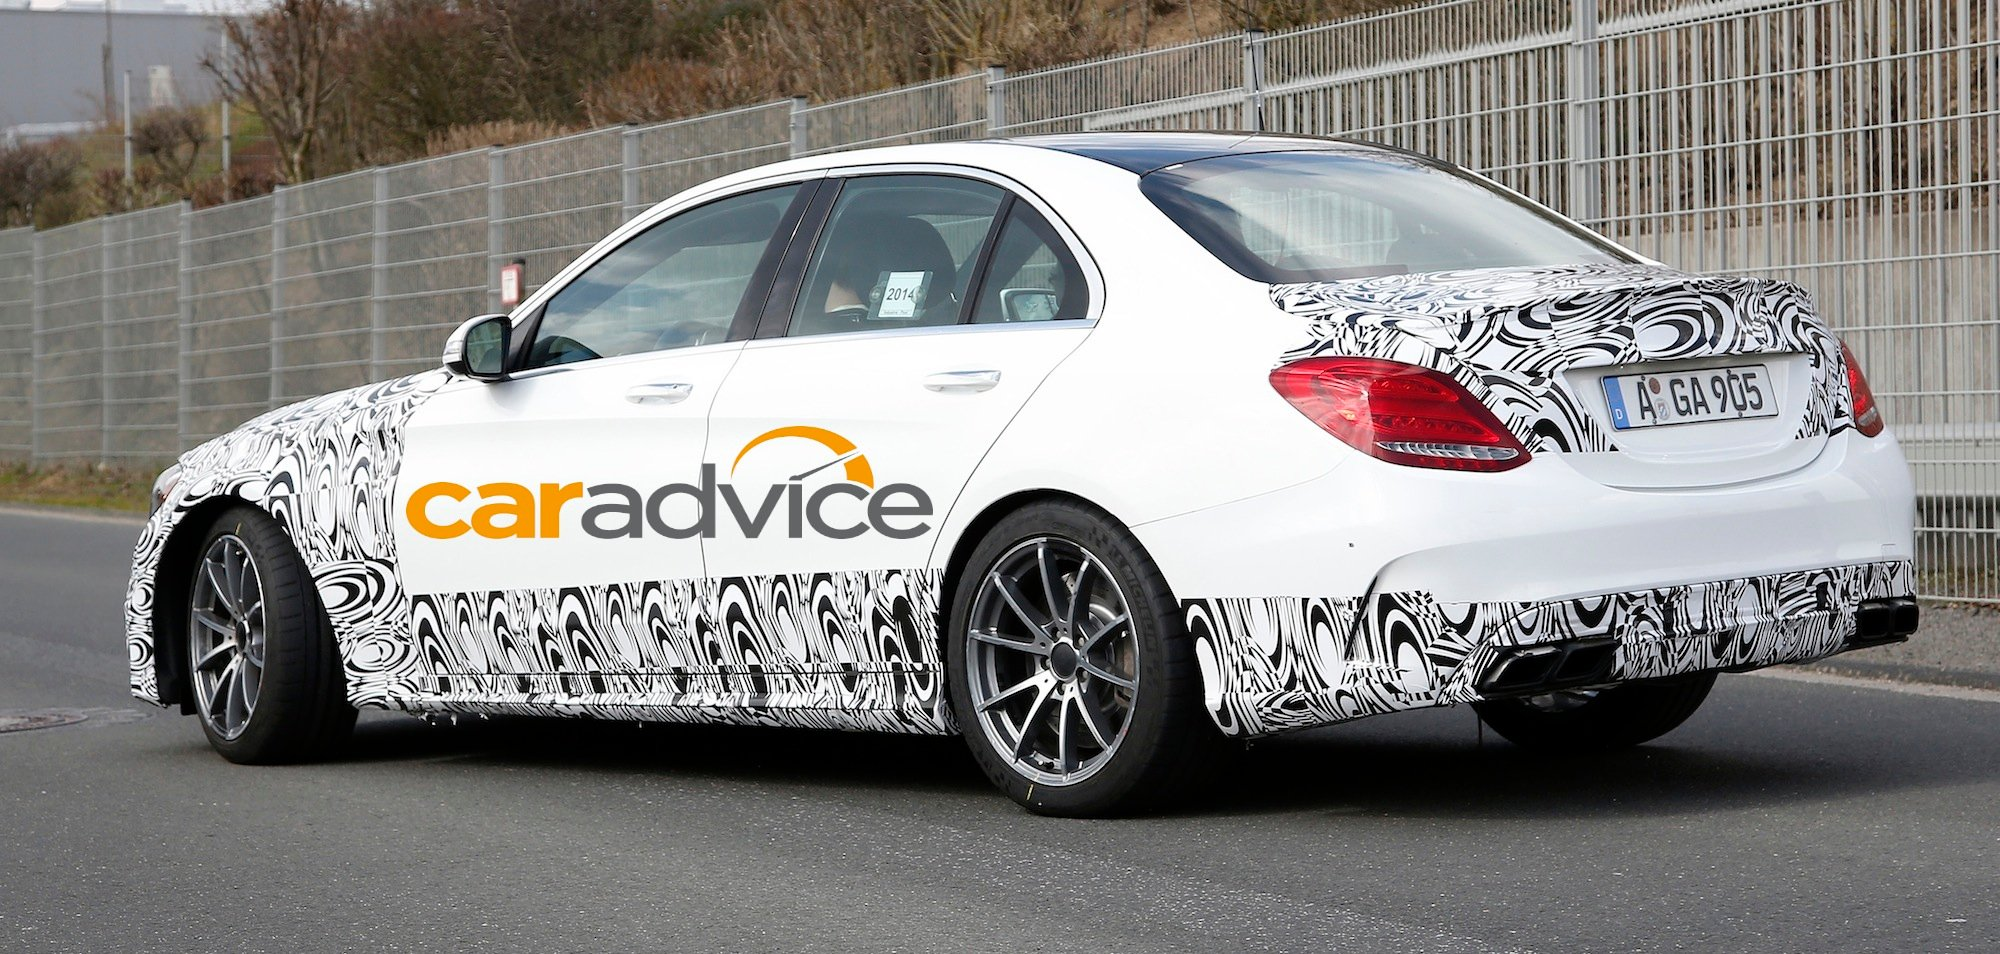 2015 mercedes benz c63 amg m3 rival spied photos 1 of 6 for 2015 amg c63 mercedes benz